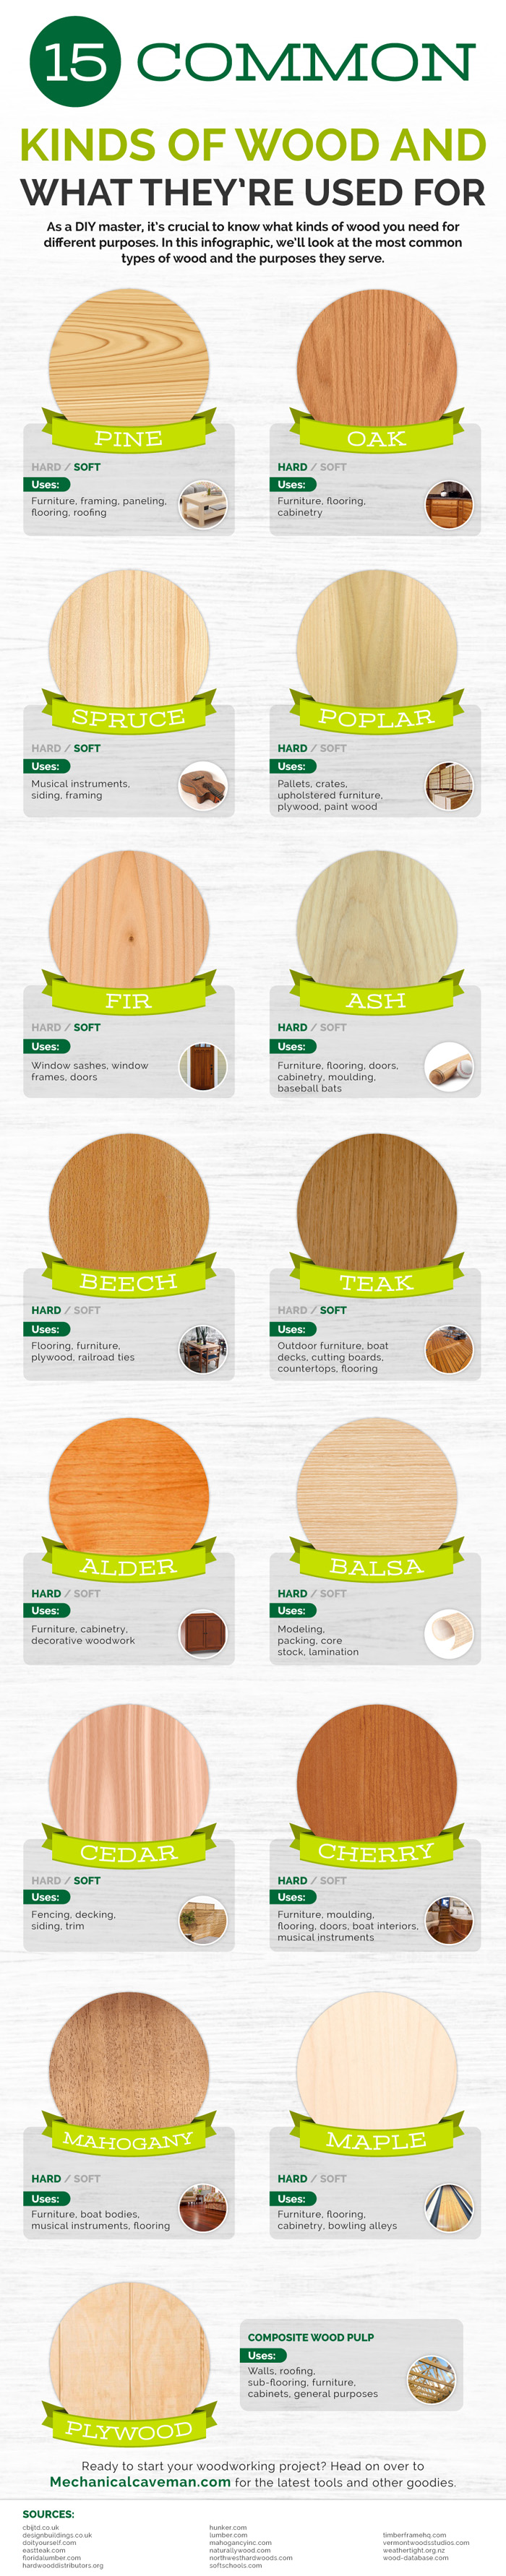 pine wood, oak wood, spruce wood, poplar wood, fir wood, ash wood, beech wood, teak wood, alder wood, balsa wood, cedar wood, cherry wood, mahogany wood, maple wood, plywood, wood furniture, woodworking, wood design, wood art, furniture design, hand tools, wood craft, woodworking tools, woodworking project, woodworker, interior design, home design, kinds of wood, wood framing, crates, musical instruments, wood lamination, bowling alleys, home improvement, window frame, architecture, workbench, furniture makeover, roofing, flooring, cabinetry, moulding, boat interiors, fencing, decking, door frames, upholstery, paint wood, DIY furniture, woodworking advantages, woodworking disadvantages, soft wood, hard wood, wood texture, craftsmen, wood trees, outdoor furniture, indoor furniture, kitchen furniture, living room furniture, bedroom furniture